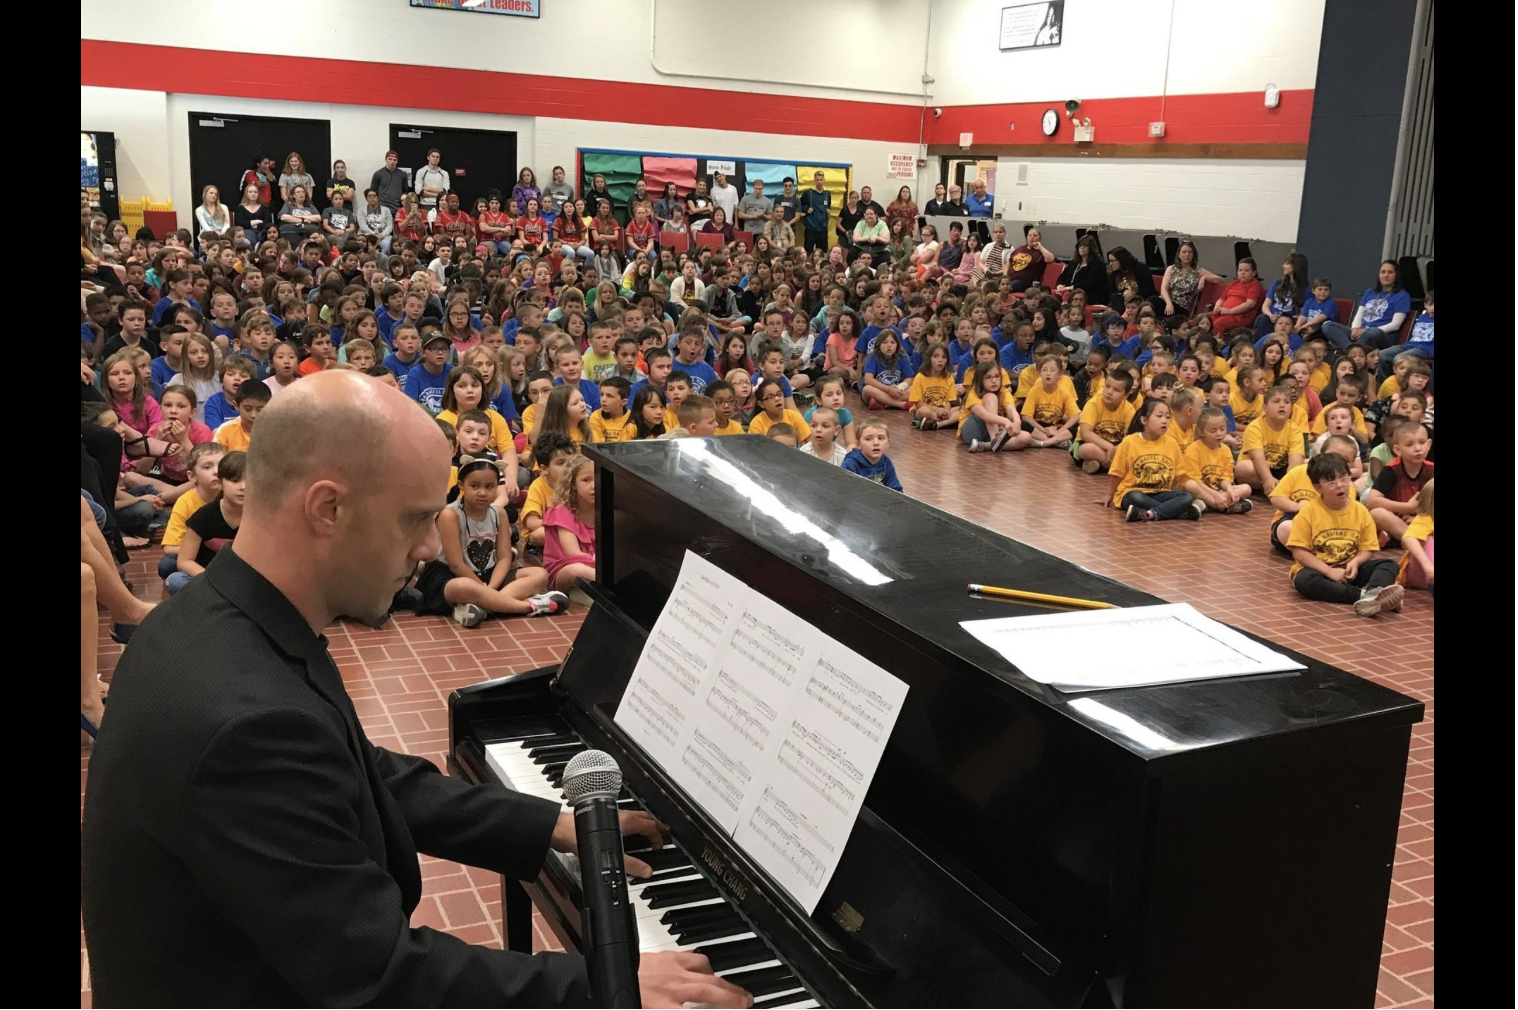 Leadership Day - On June 7th, I was asked back to my old elementary school. The school has such devoted teachers and such an incredible spirit. I was able to hear almost 400 children beautifully sing the alma mater I composed for them last December. I learned that they sing it every Friday at school. Click HERE for a news article on leadership day.